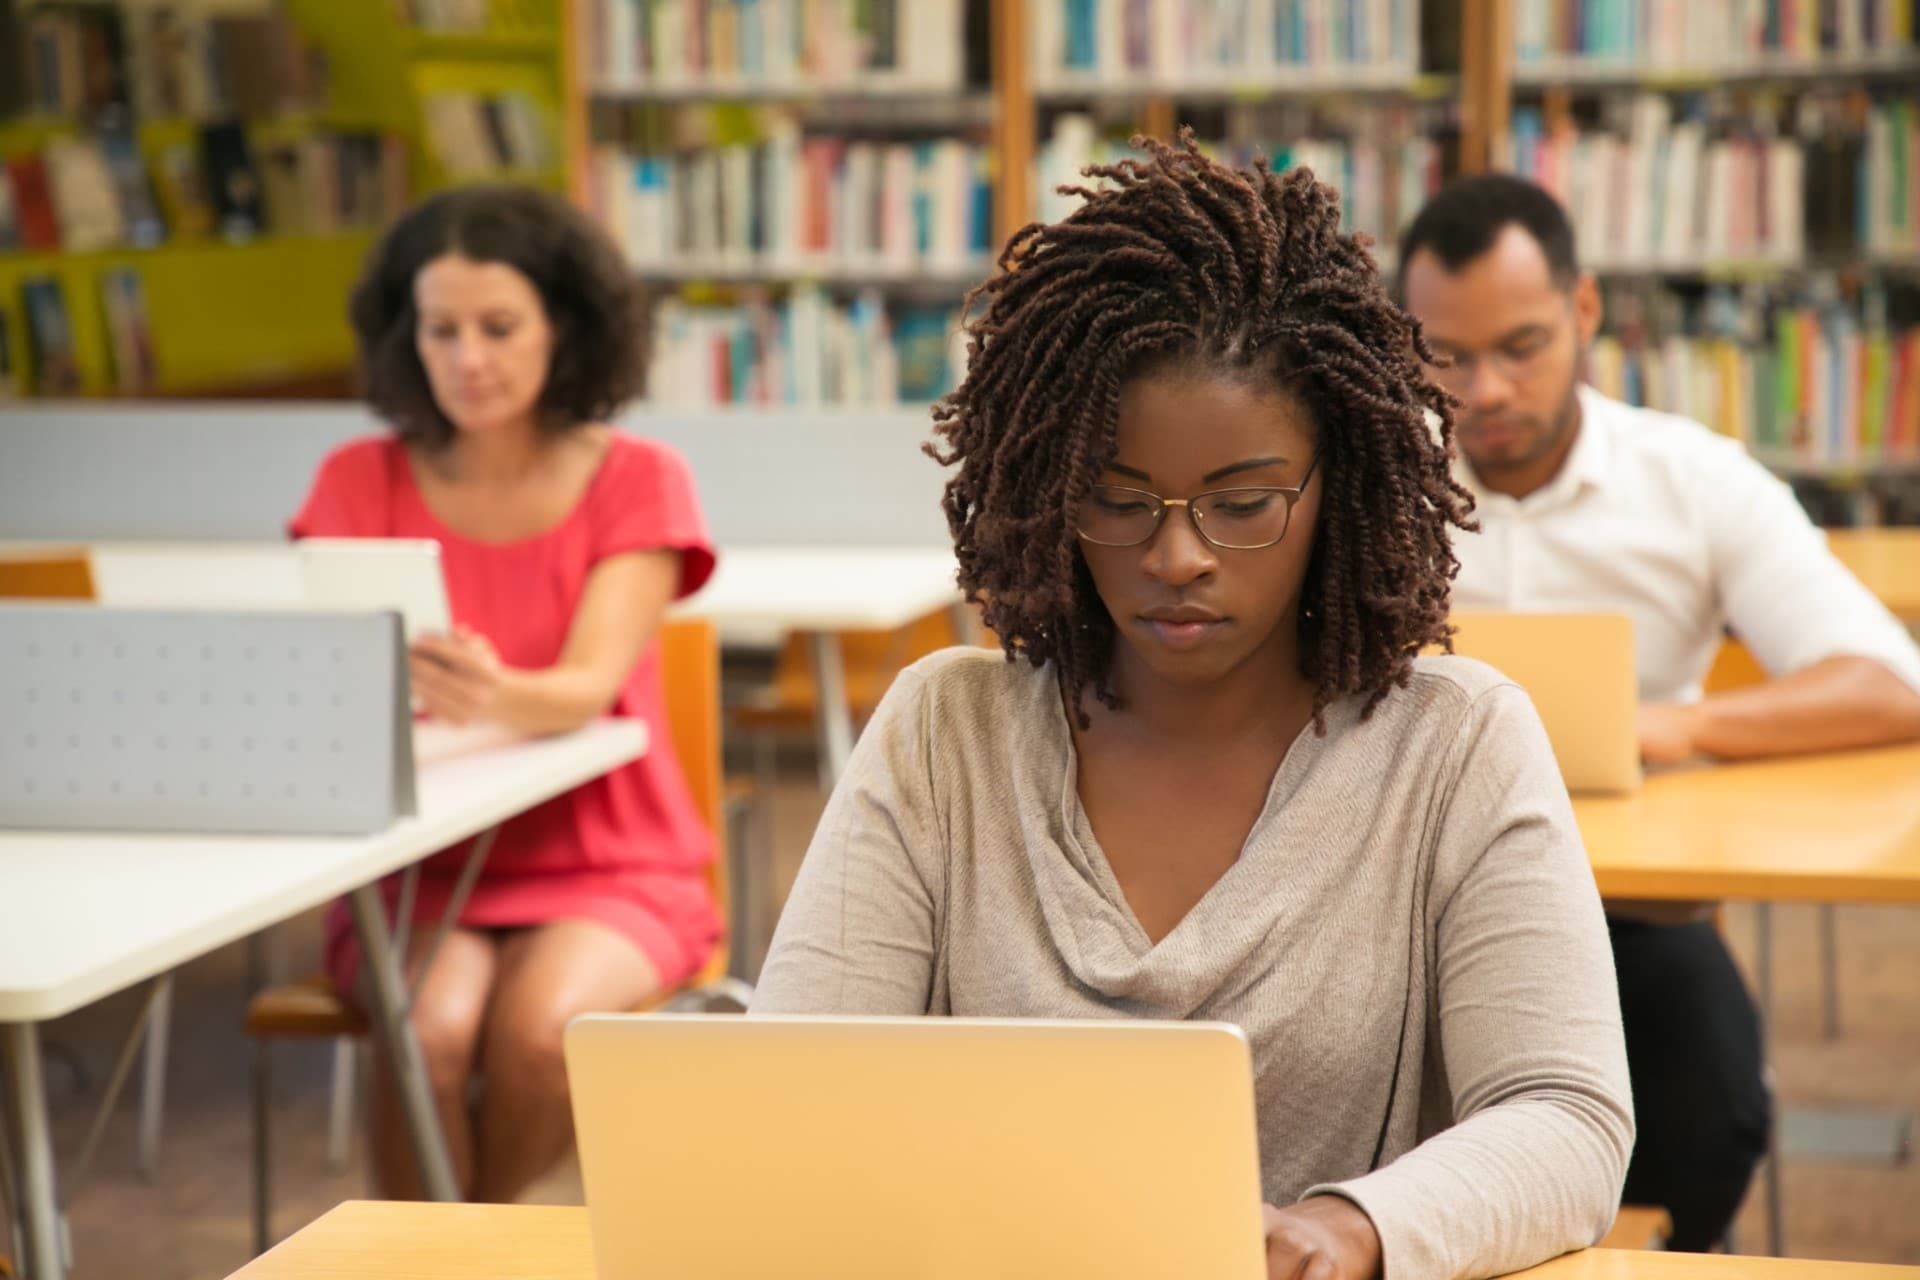 Serious African American student studying in library computer class. People sitting at desks and using laptops in classroom with bookshelves. Studying concept